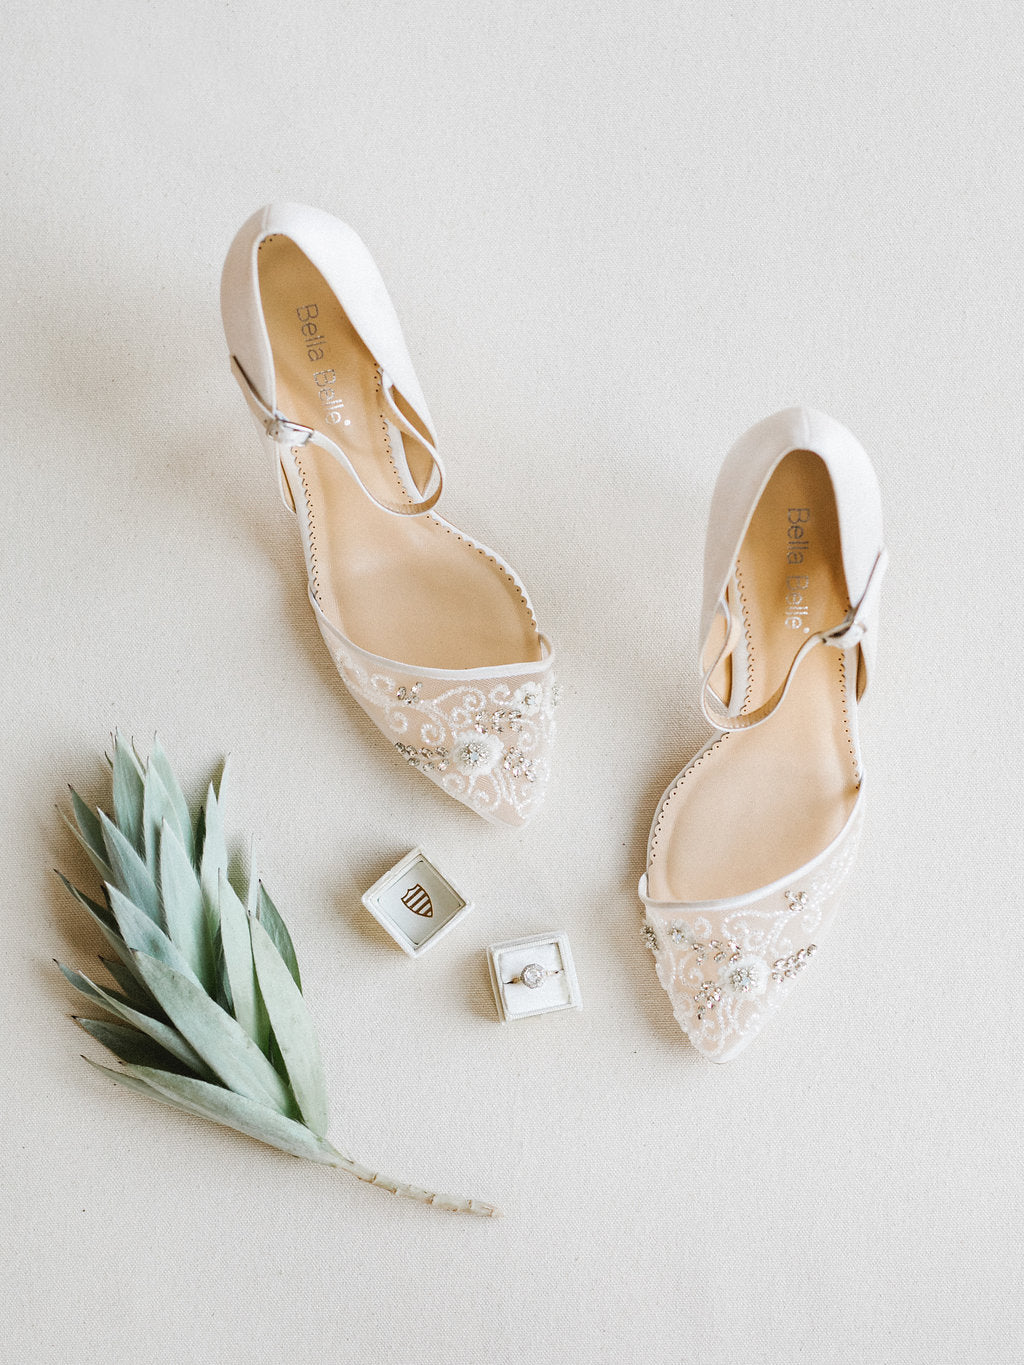 bella belle may ivory beaded wedding pumps